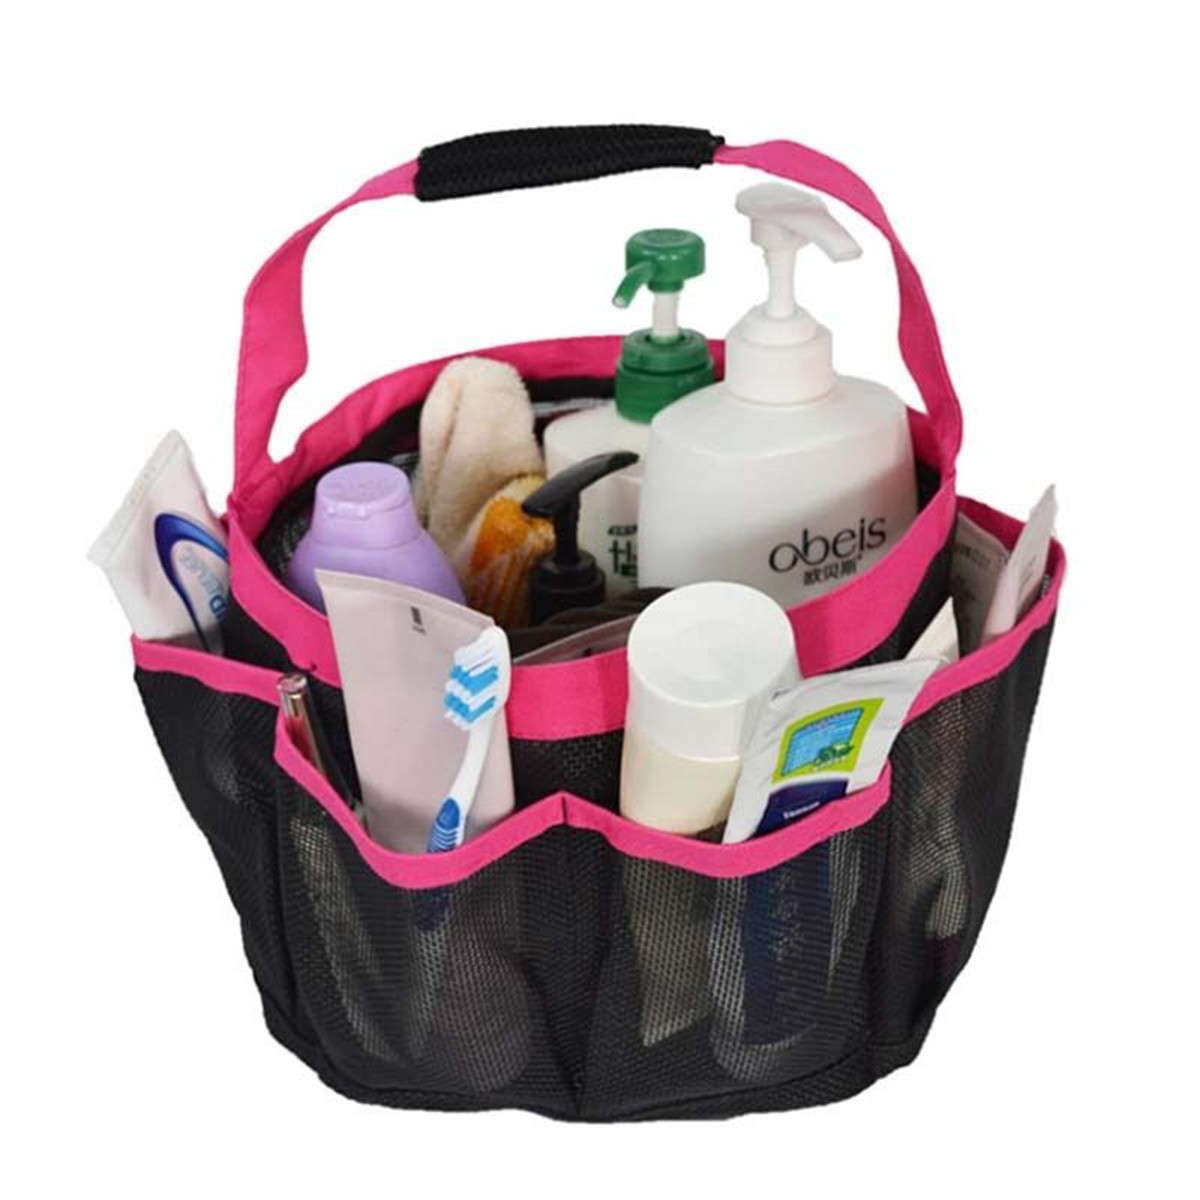 Dorm Bathroom Caddy: 8 Pockets Shower Caddy Mesh Portable Quick Dry Travel Tote